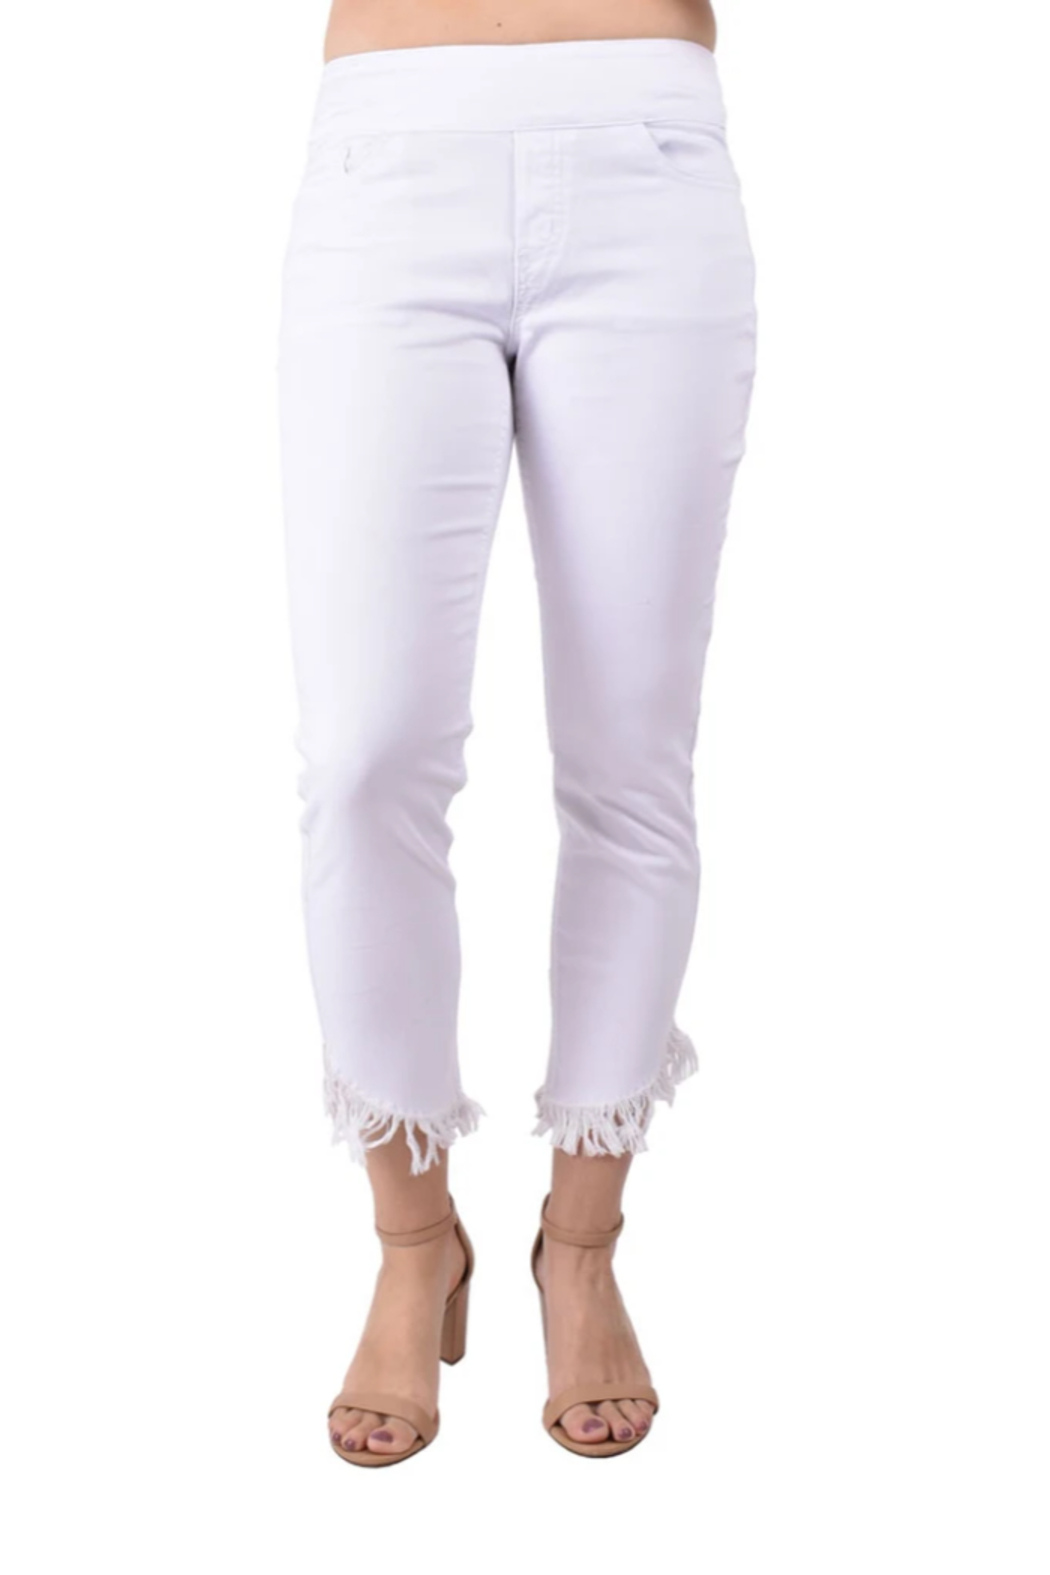 Ethyl  Miami White Fringe Ankle Jean - Front Cropped Image